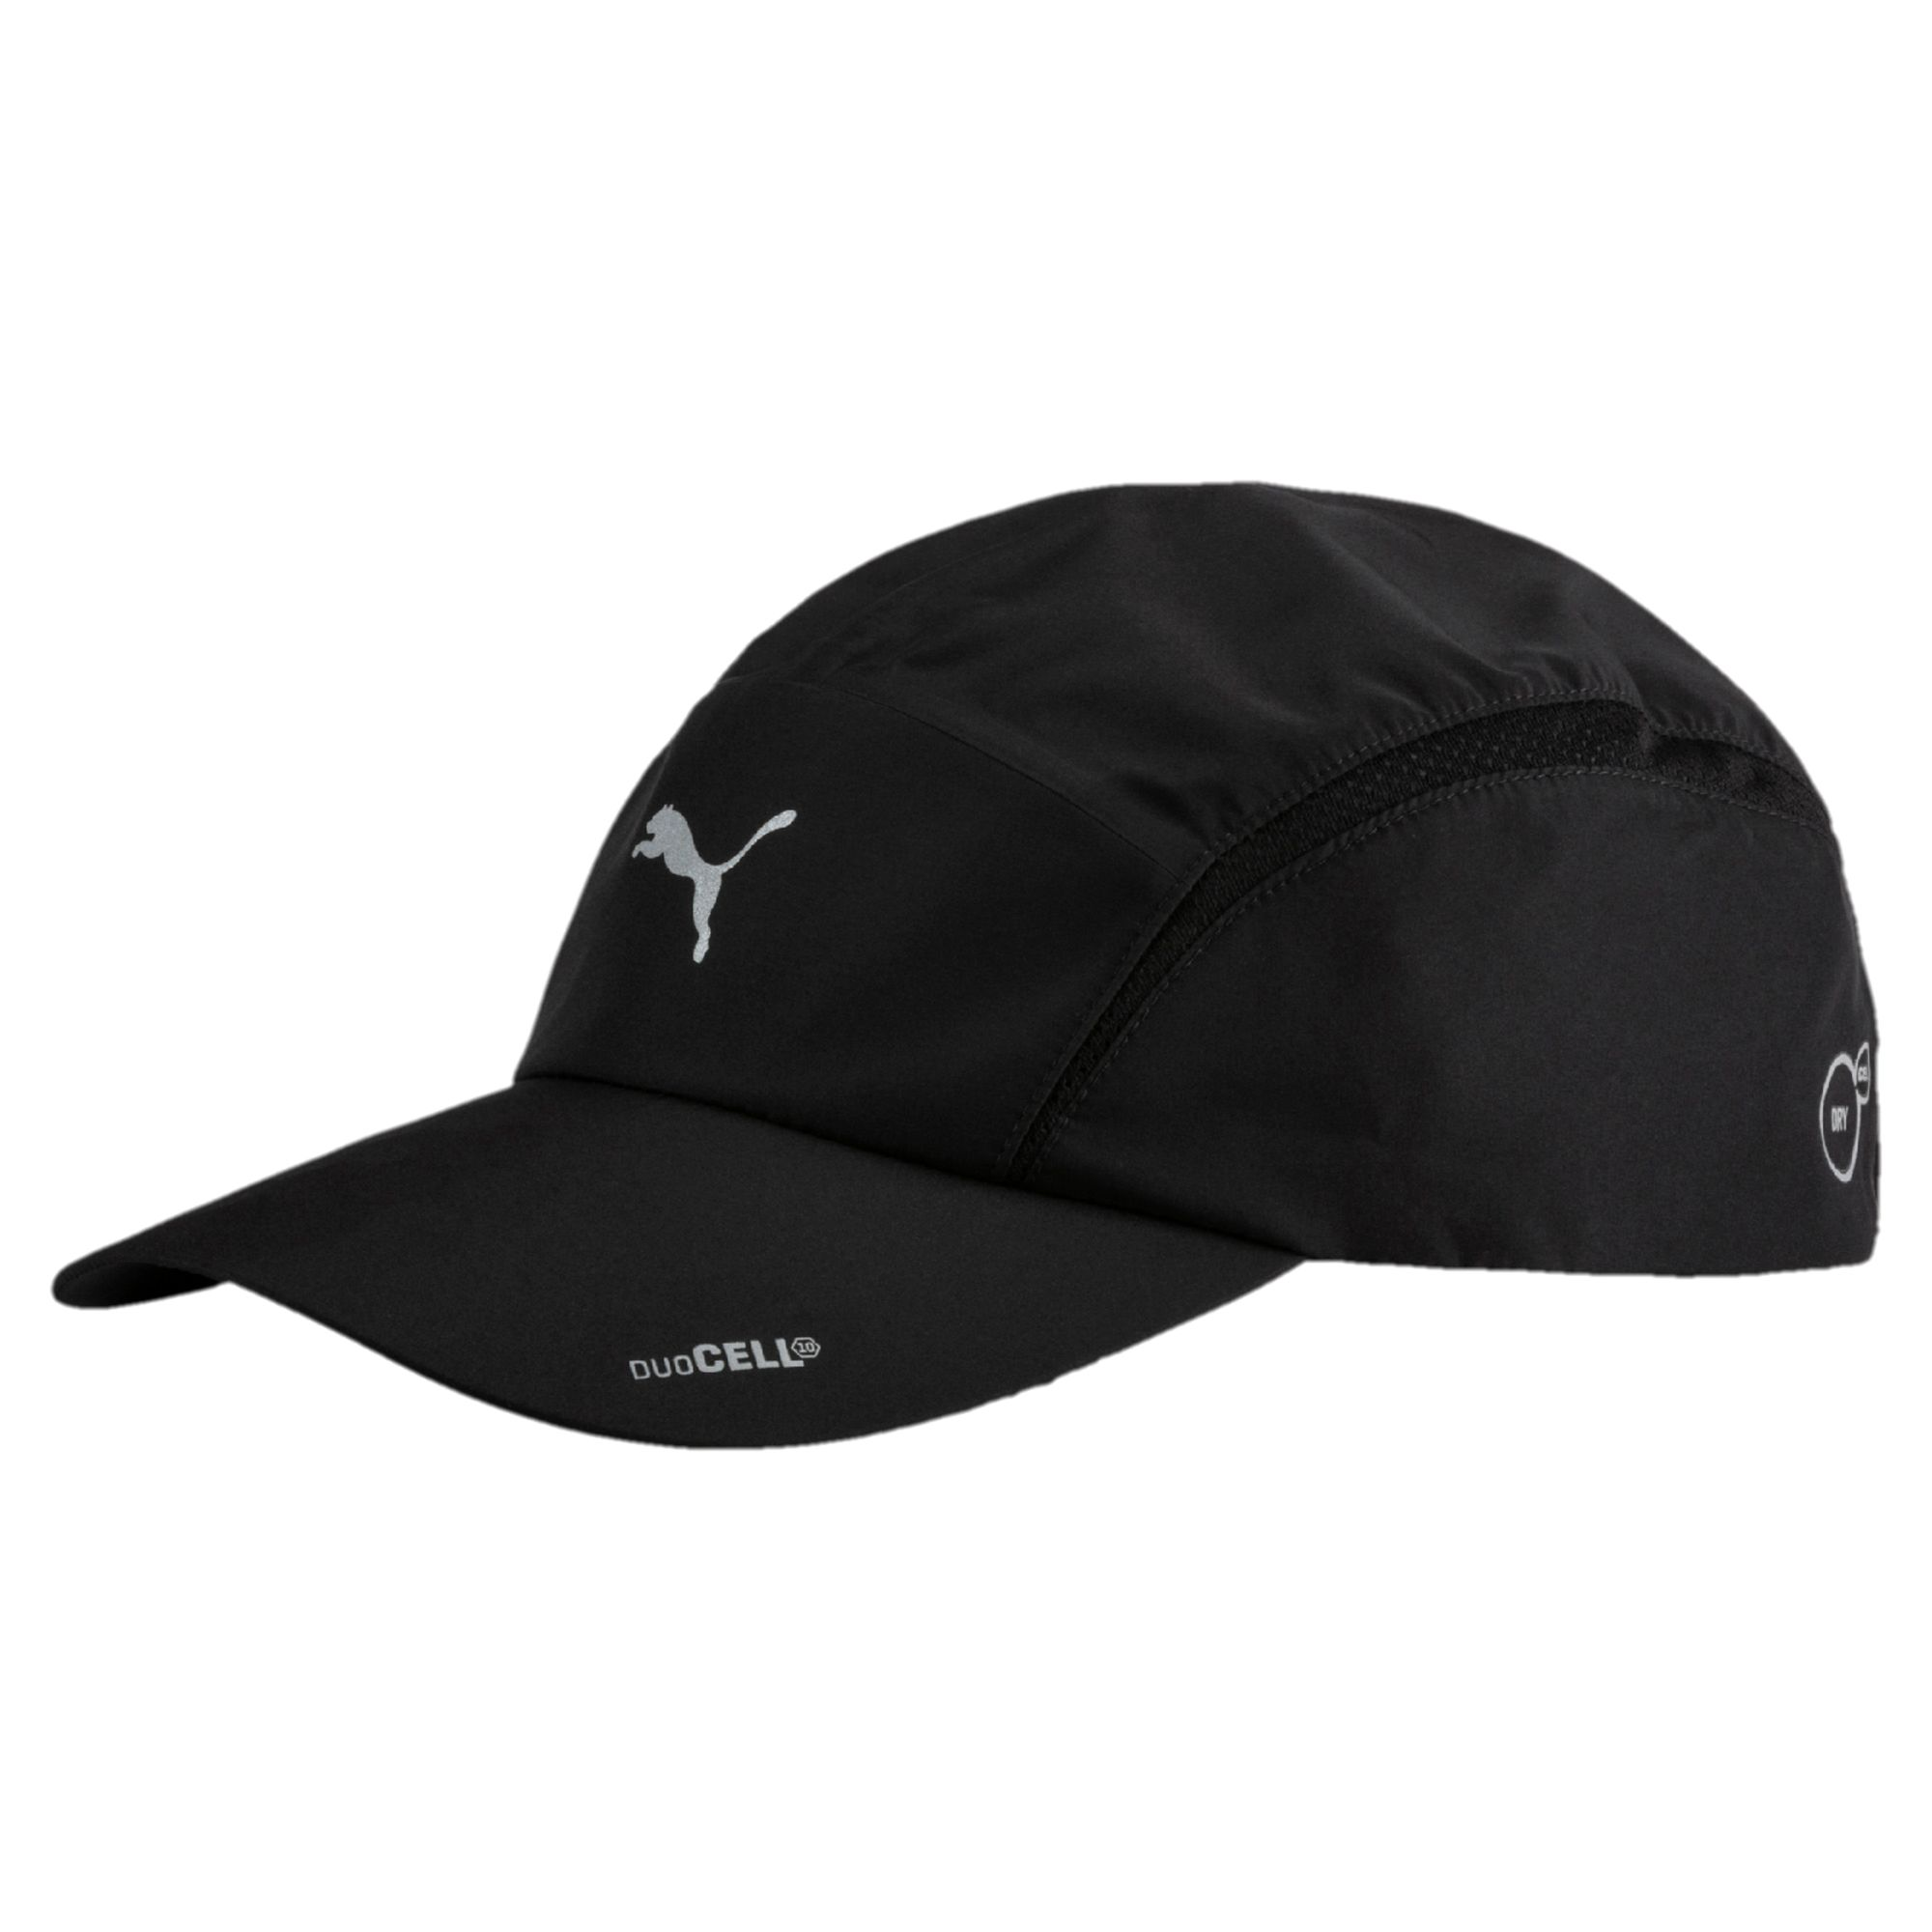 Running duoCELL Tech Cap